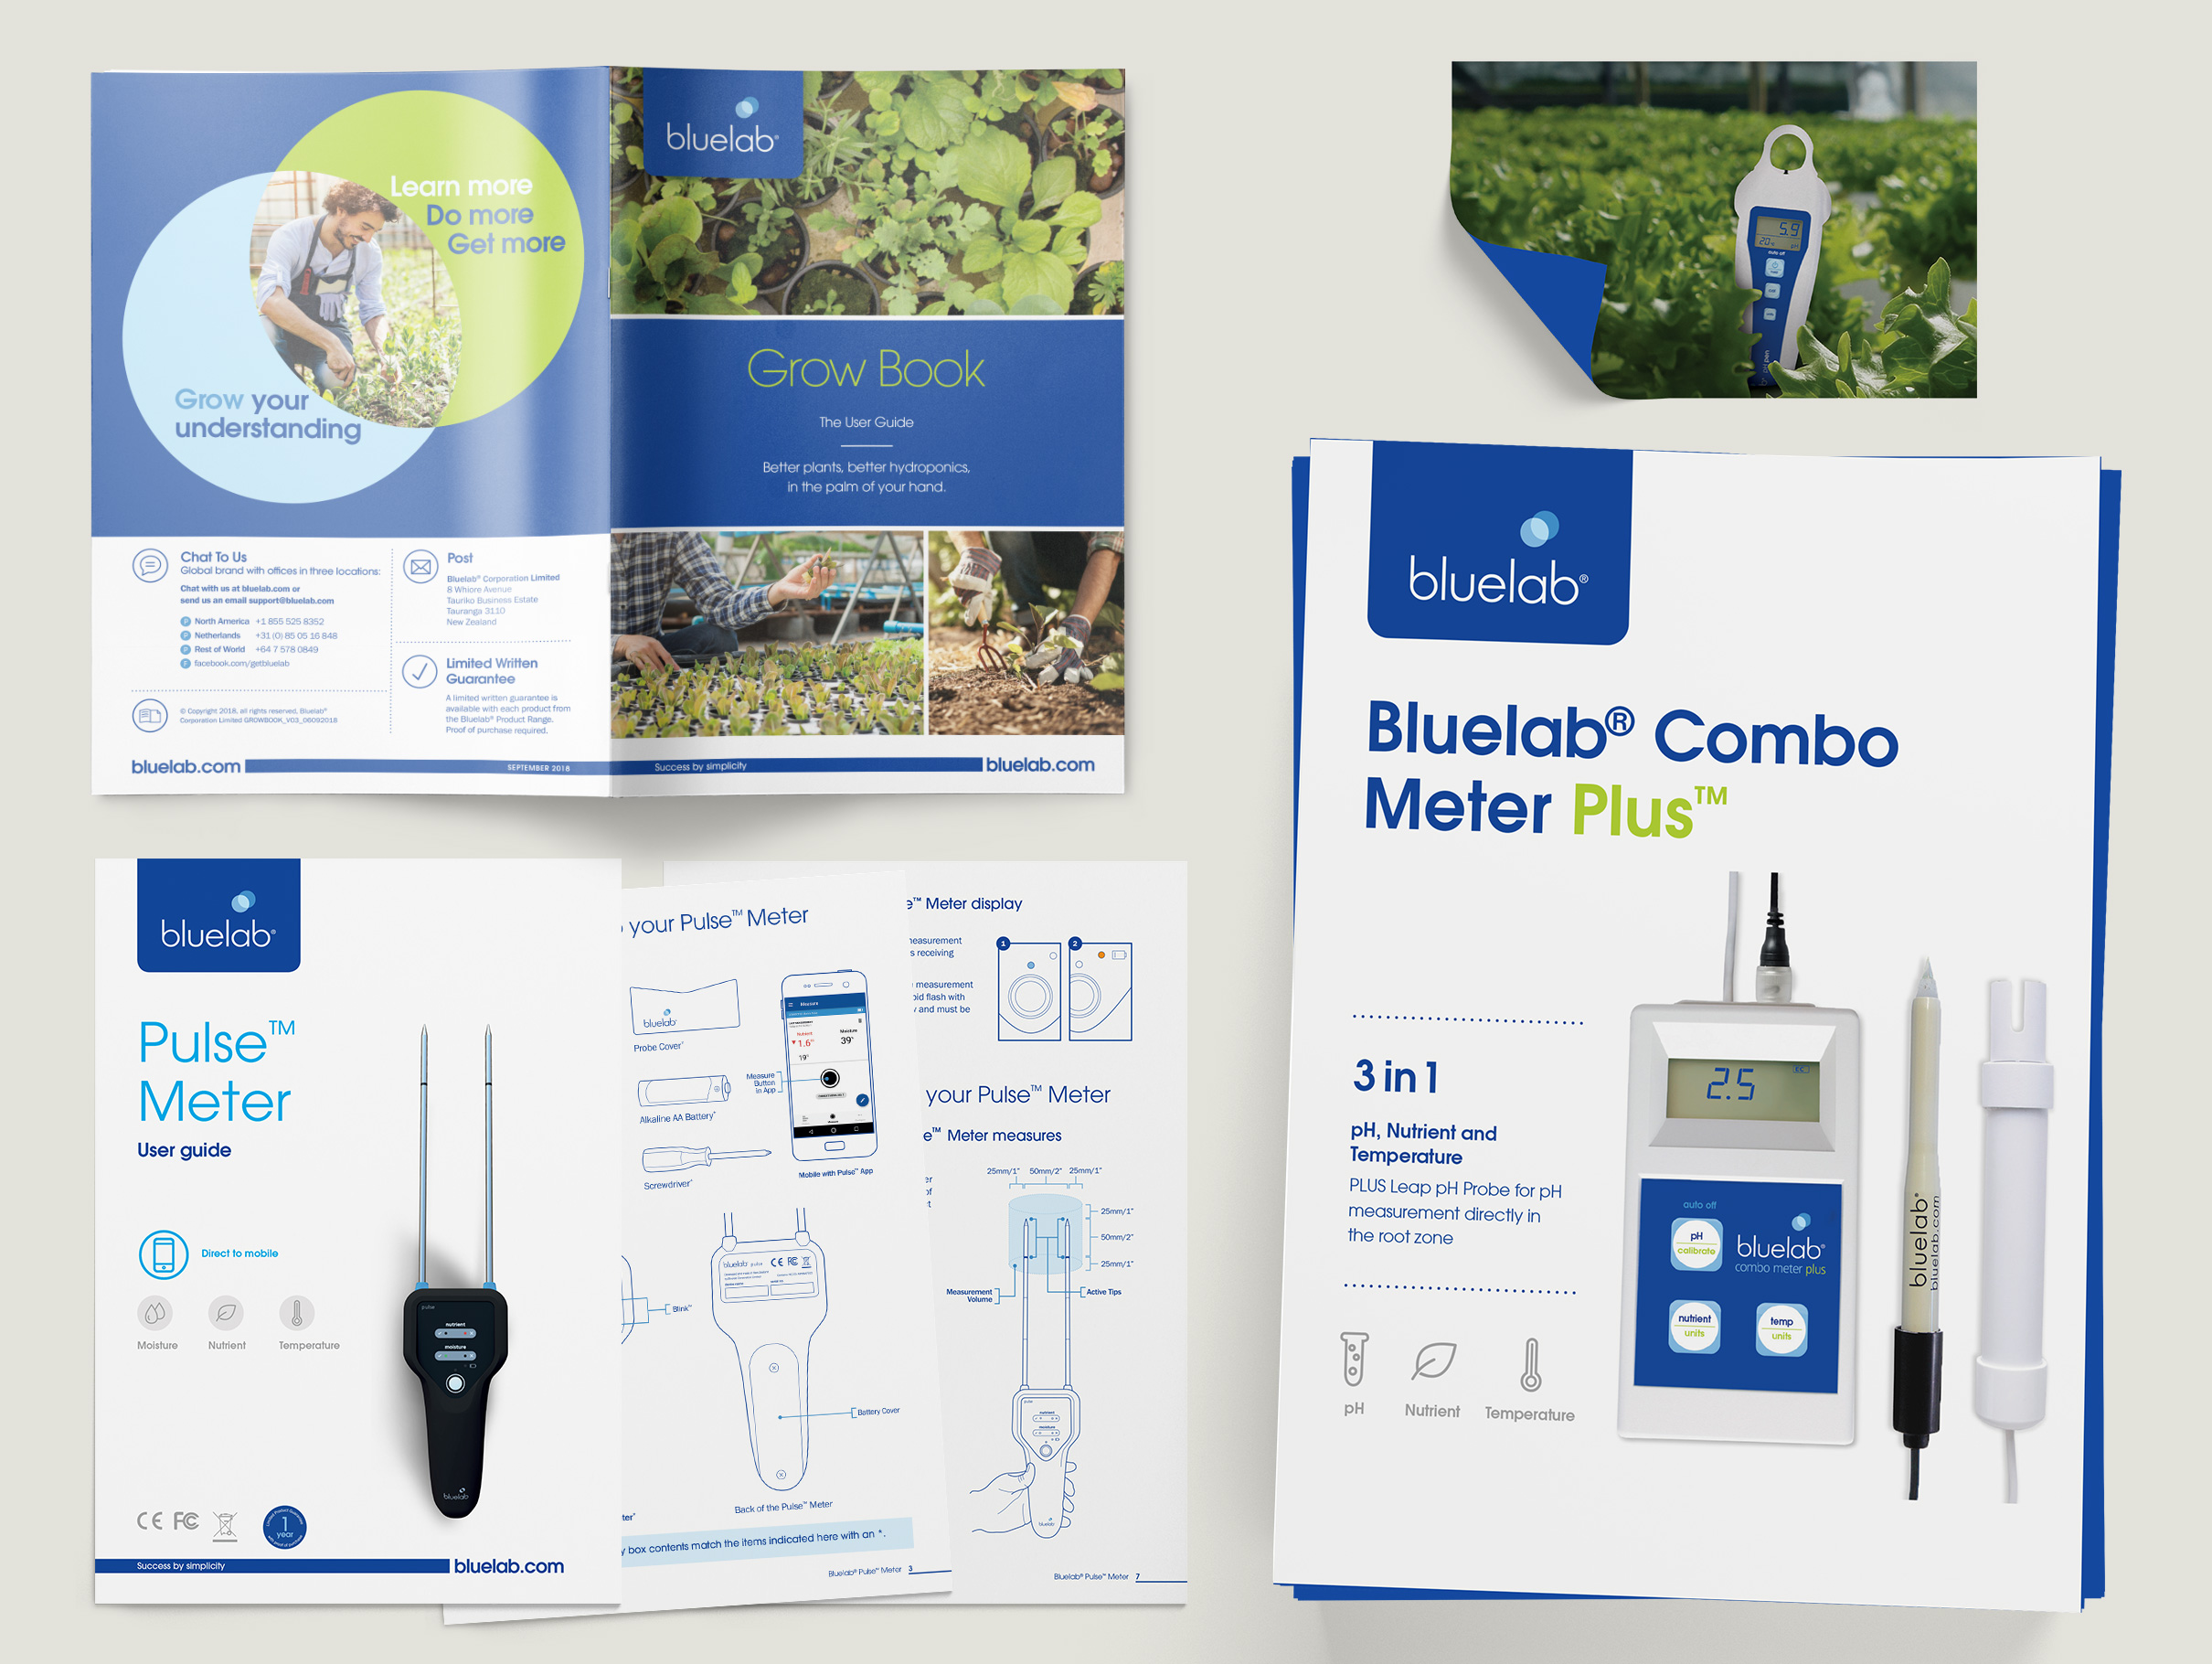 Bluelab: Brand management, packaging, multi-lingual product manuals, posters, label design, stationery, advertising and promotional material.